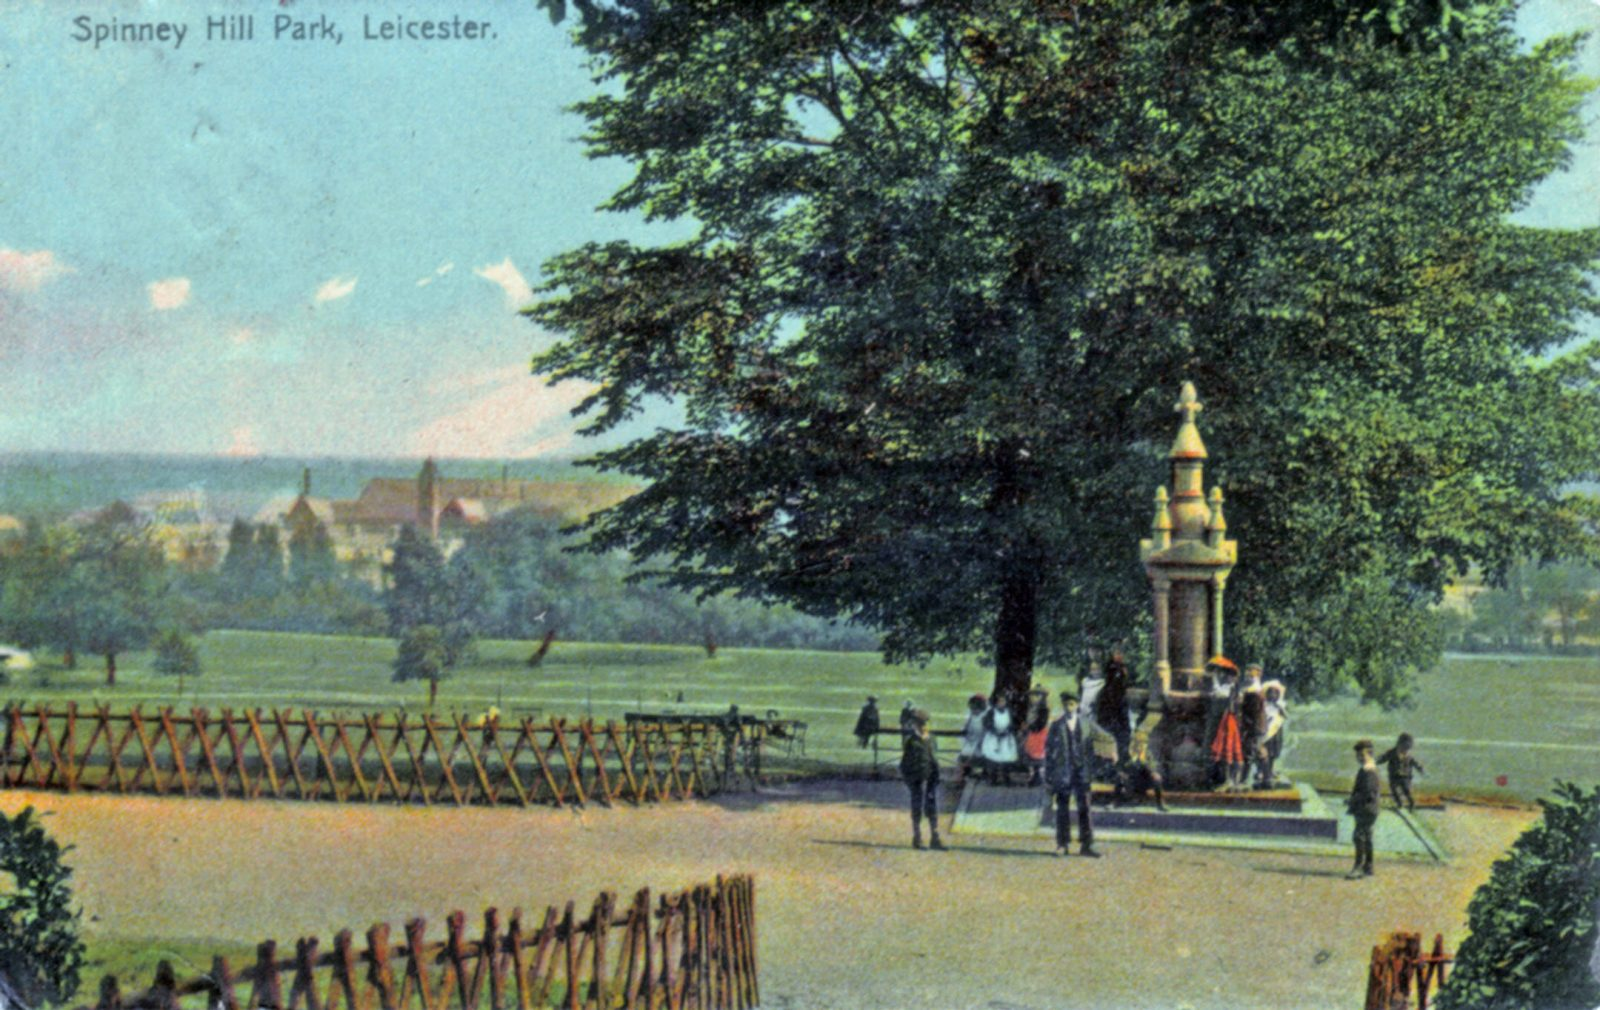 Spinney Hill Park, Leicester. 1901-1920: The granite fountain which was donated to the city in 1888 by a wealthy market-place pork and cheese merchant and local councillor Mr Samuel Mather. Franked 1908 (File:1248)